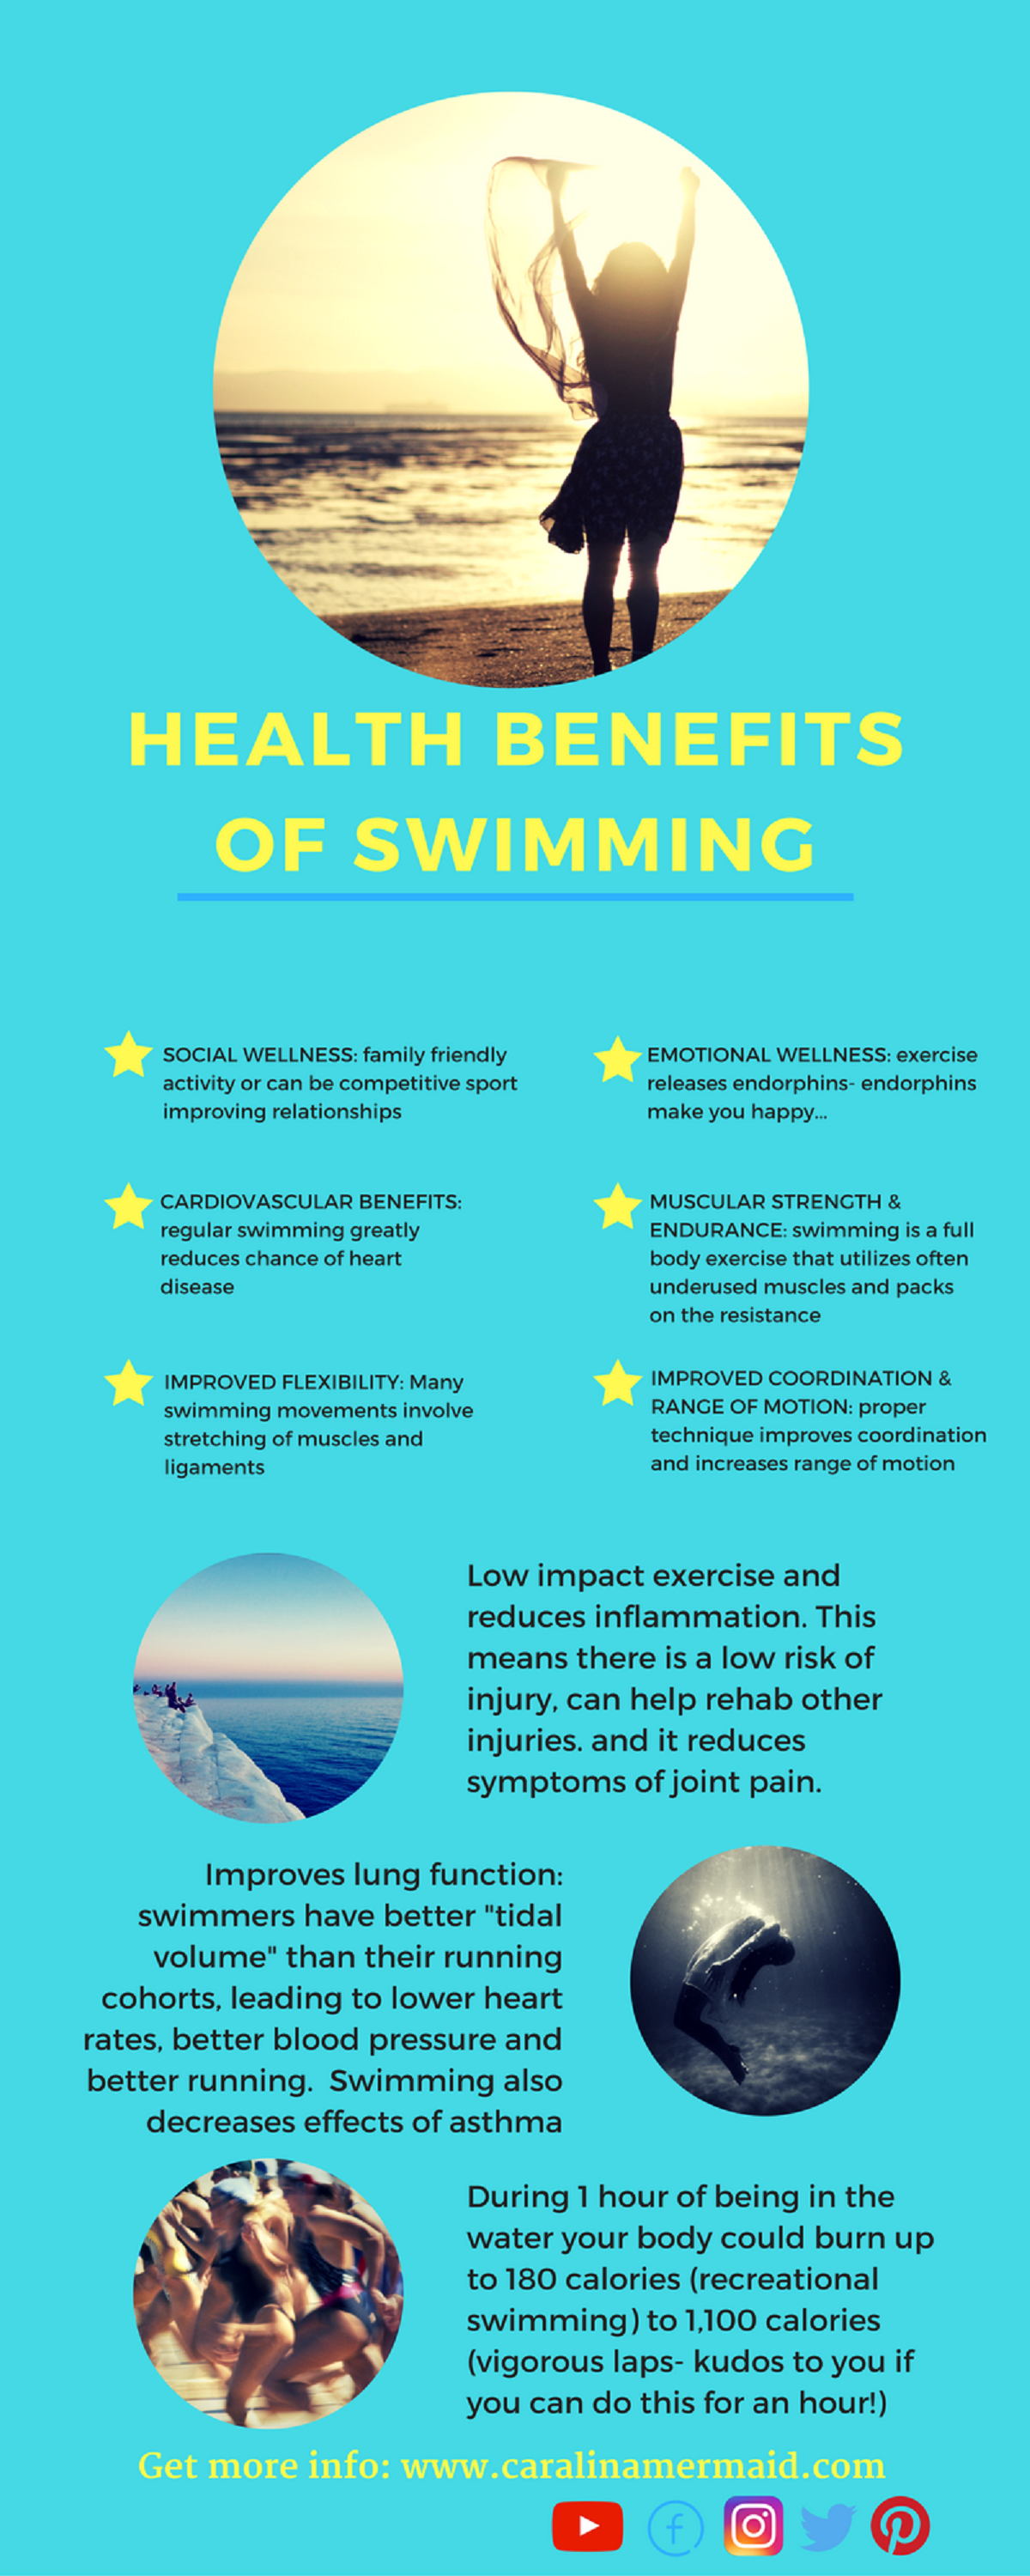 benefits-of-swimming-infographic